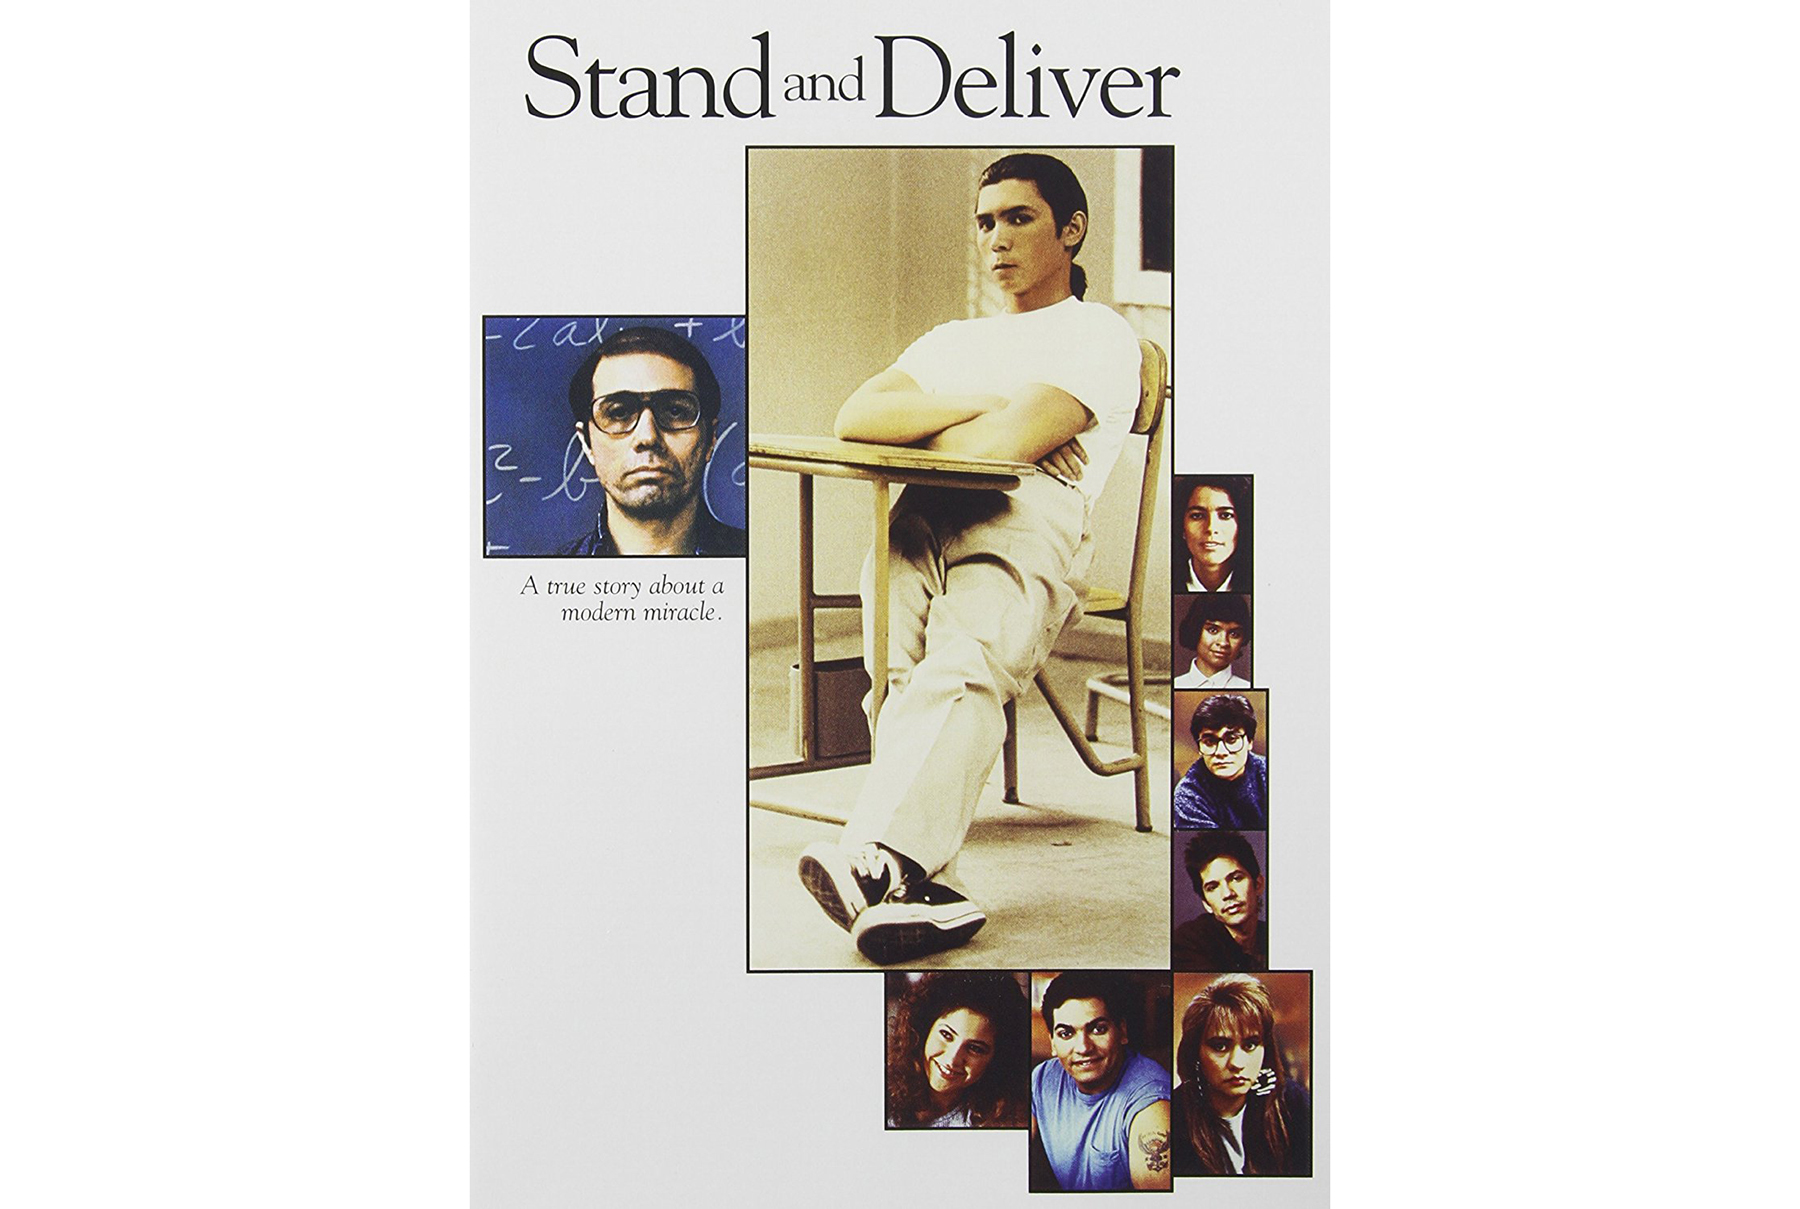 Stand and Deliver (1988)